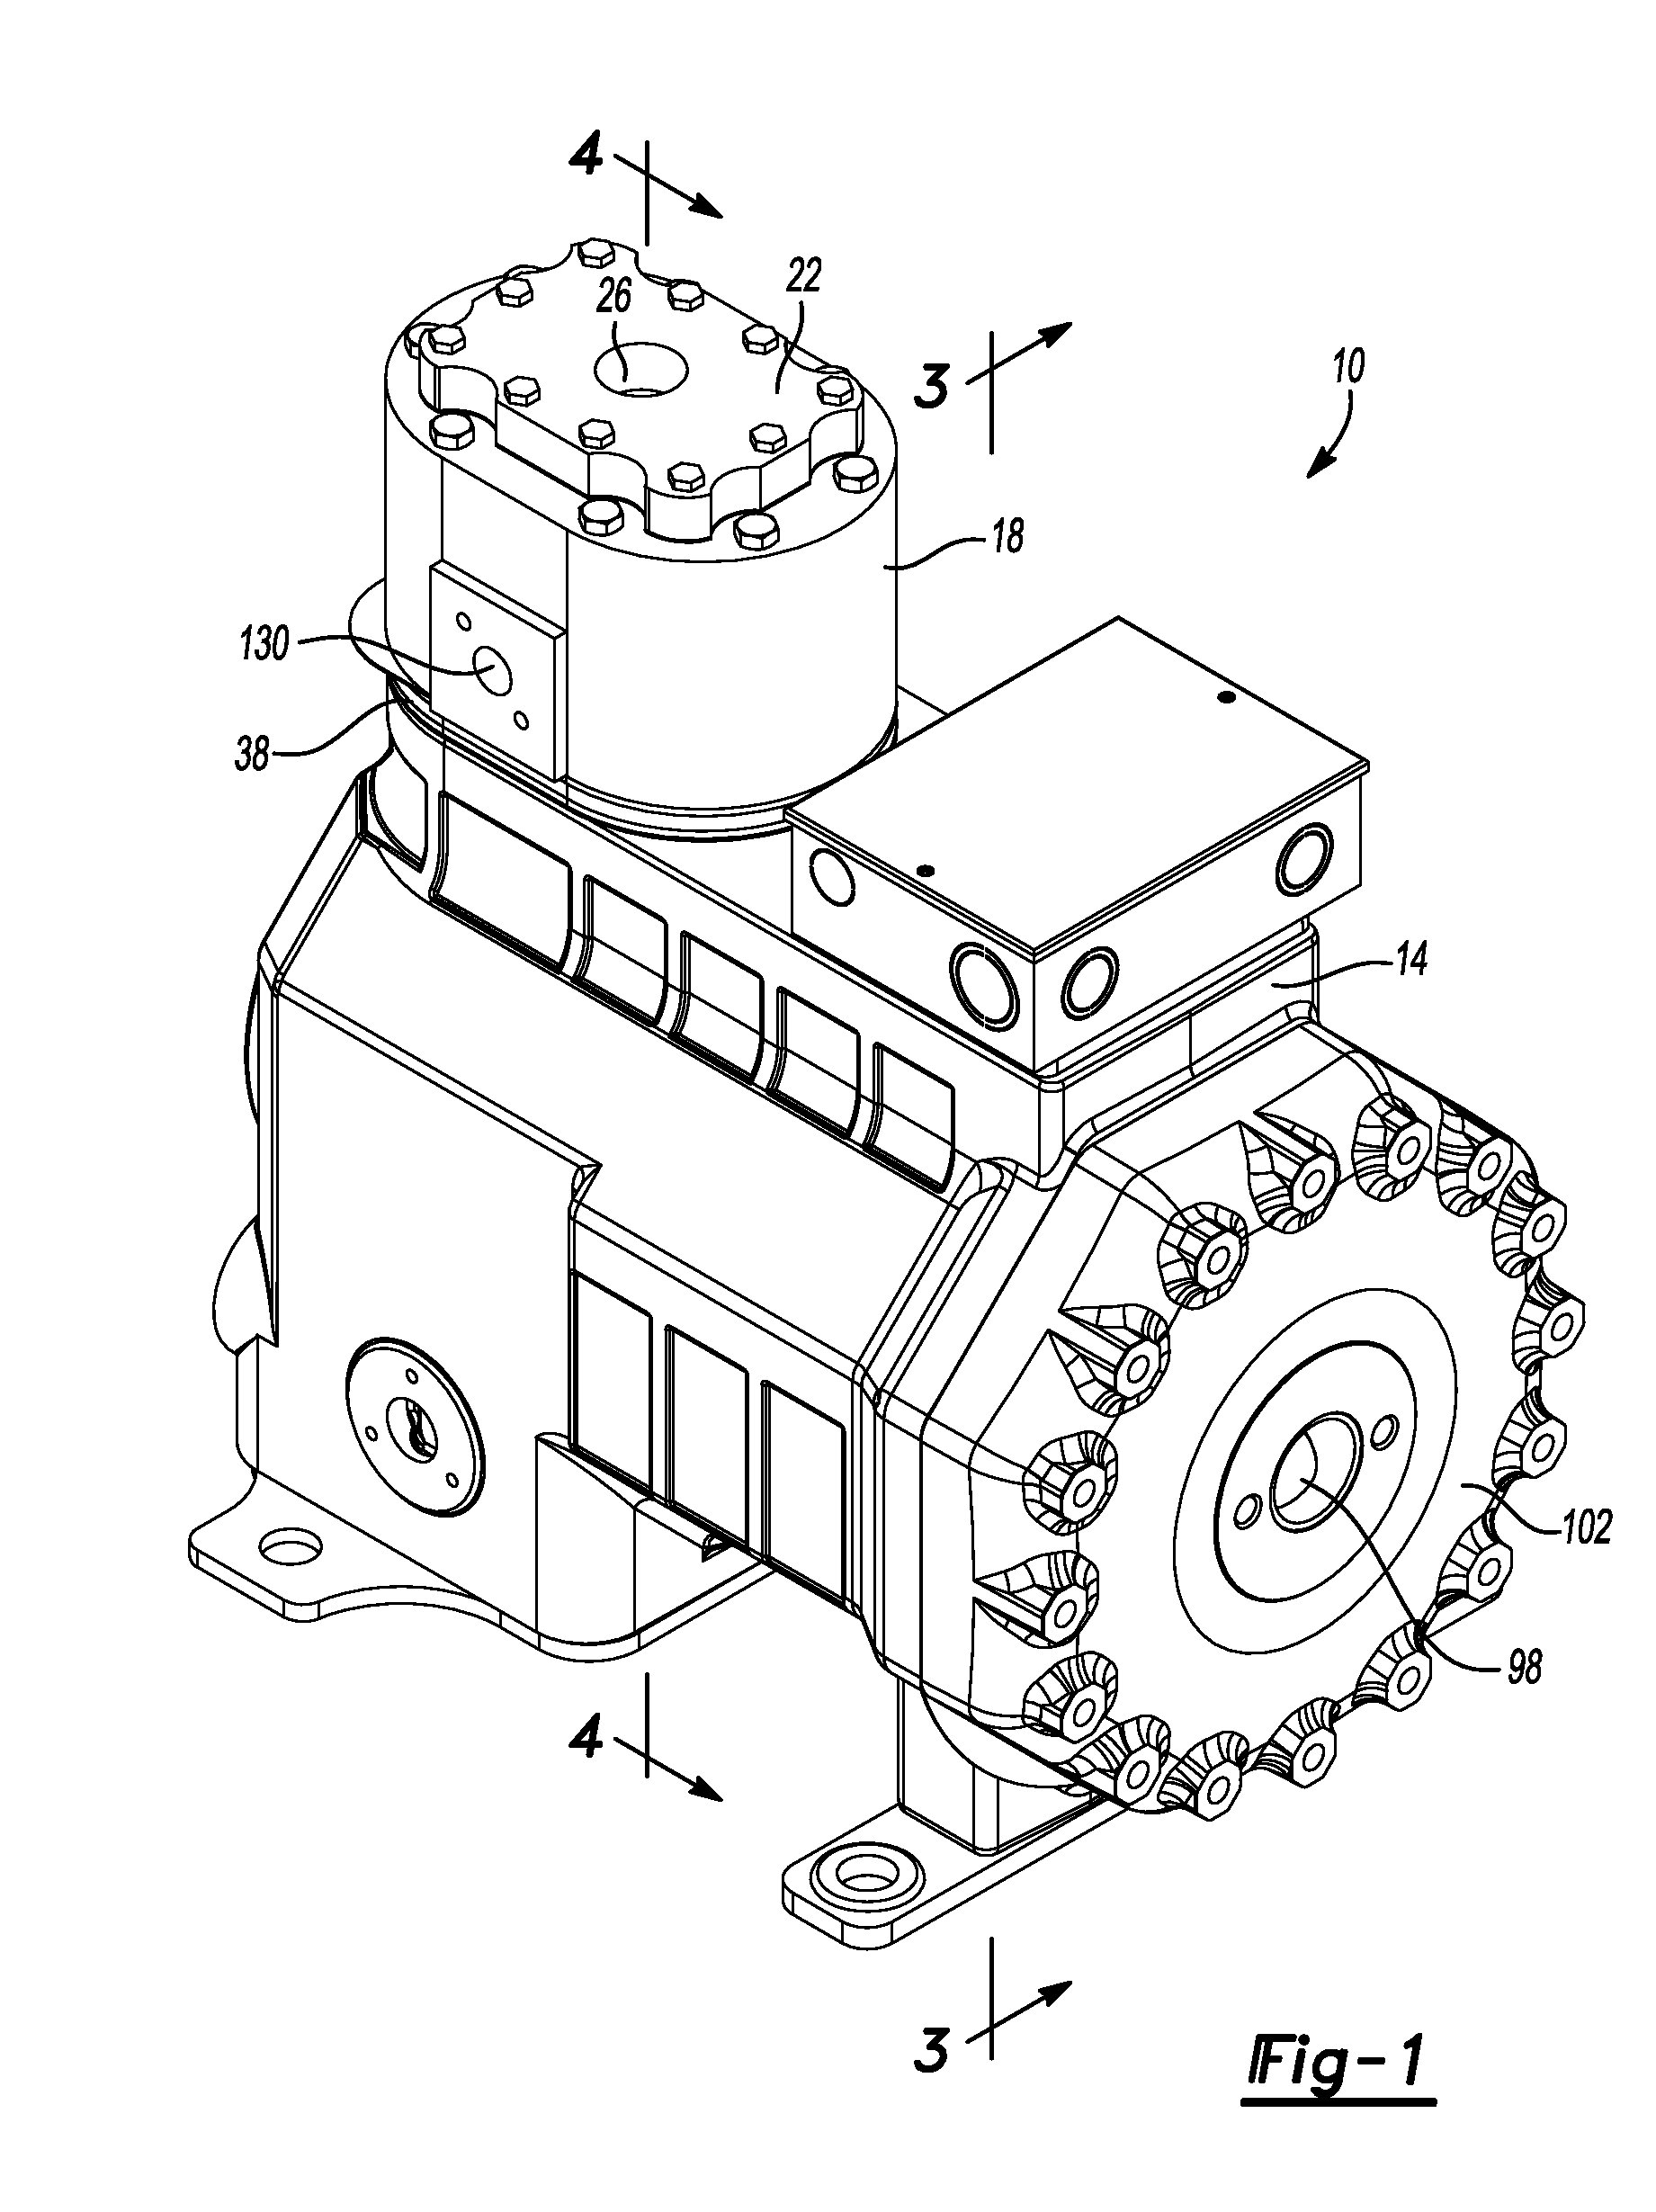 patent us20140170003 - reciprocating compressor with vapor injection system